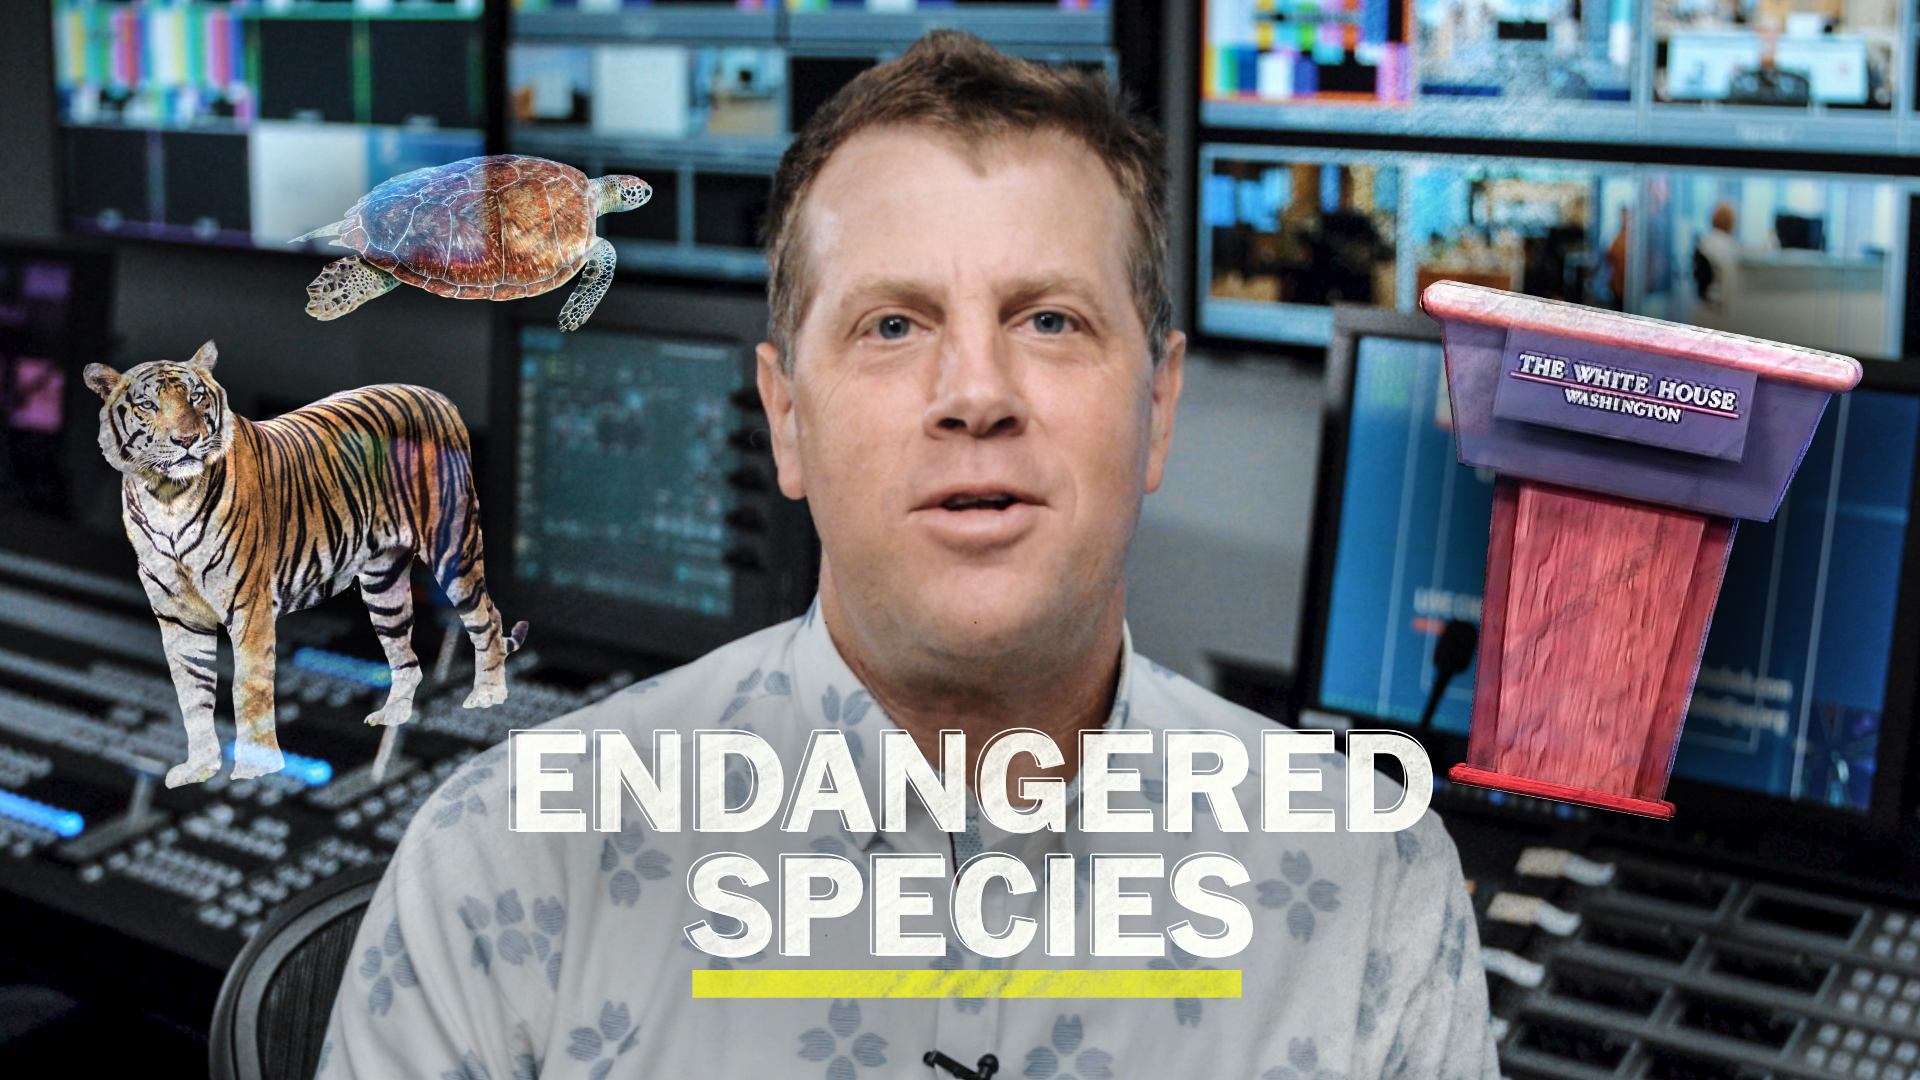 Put the White House press briefing on the endangered species list